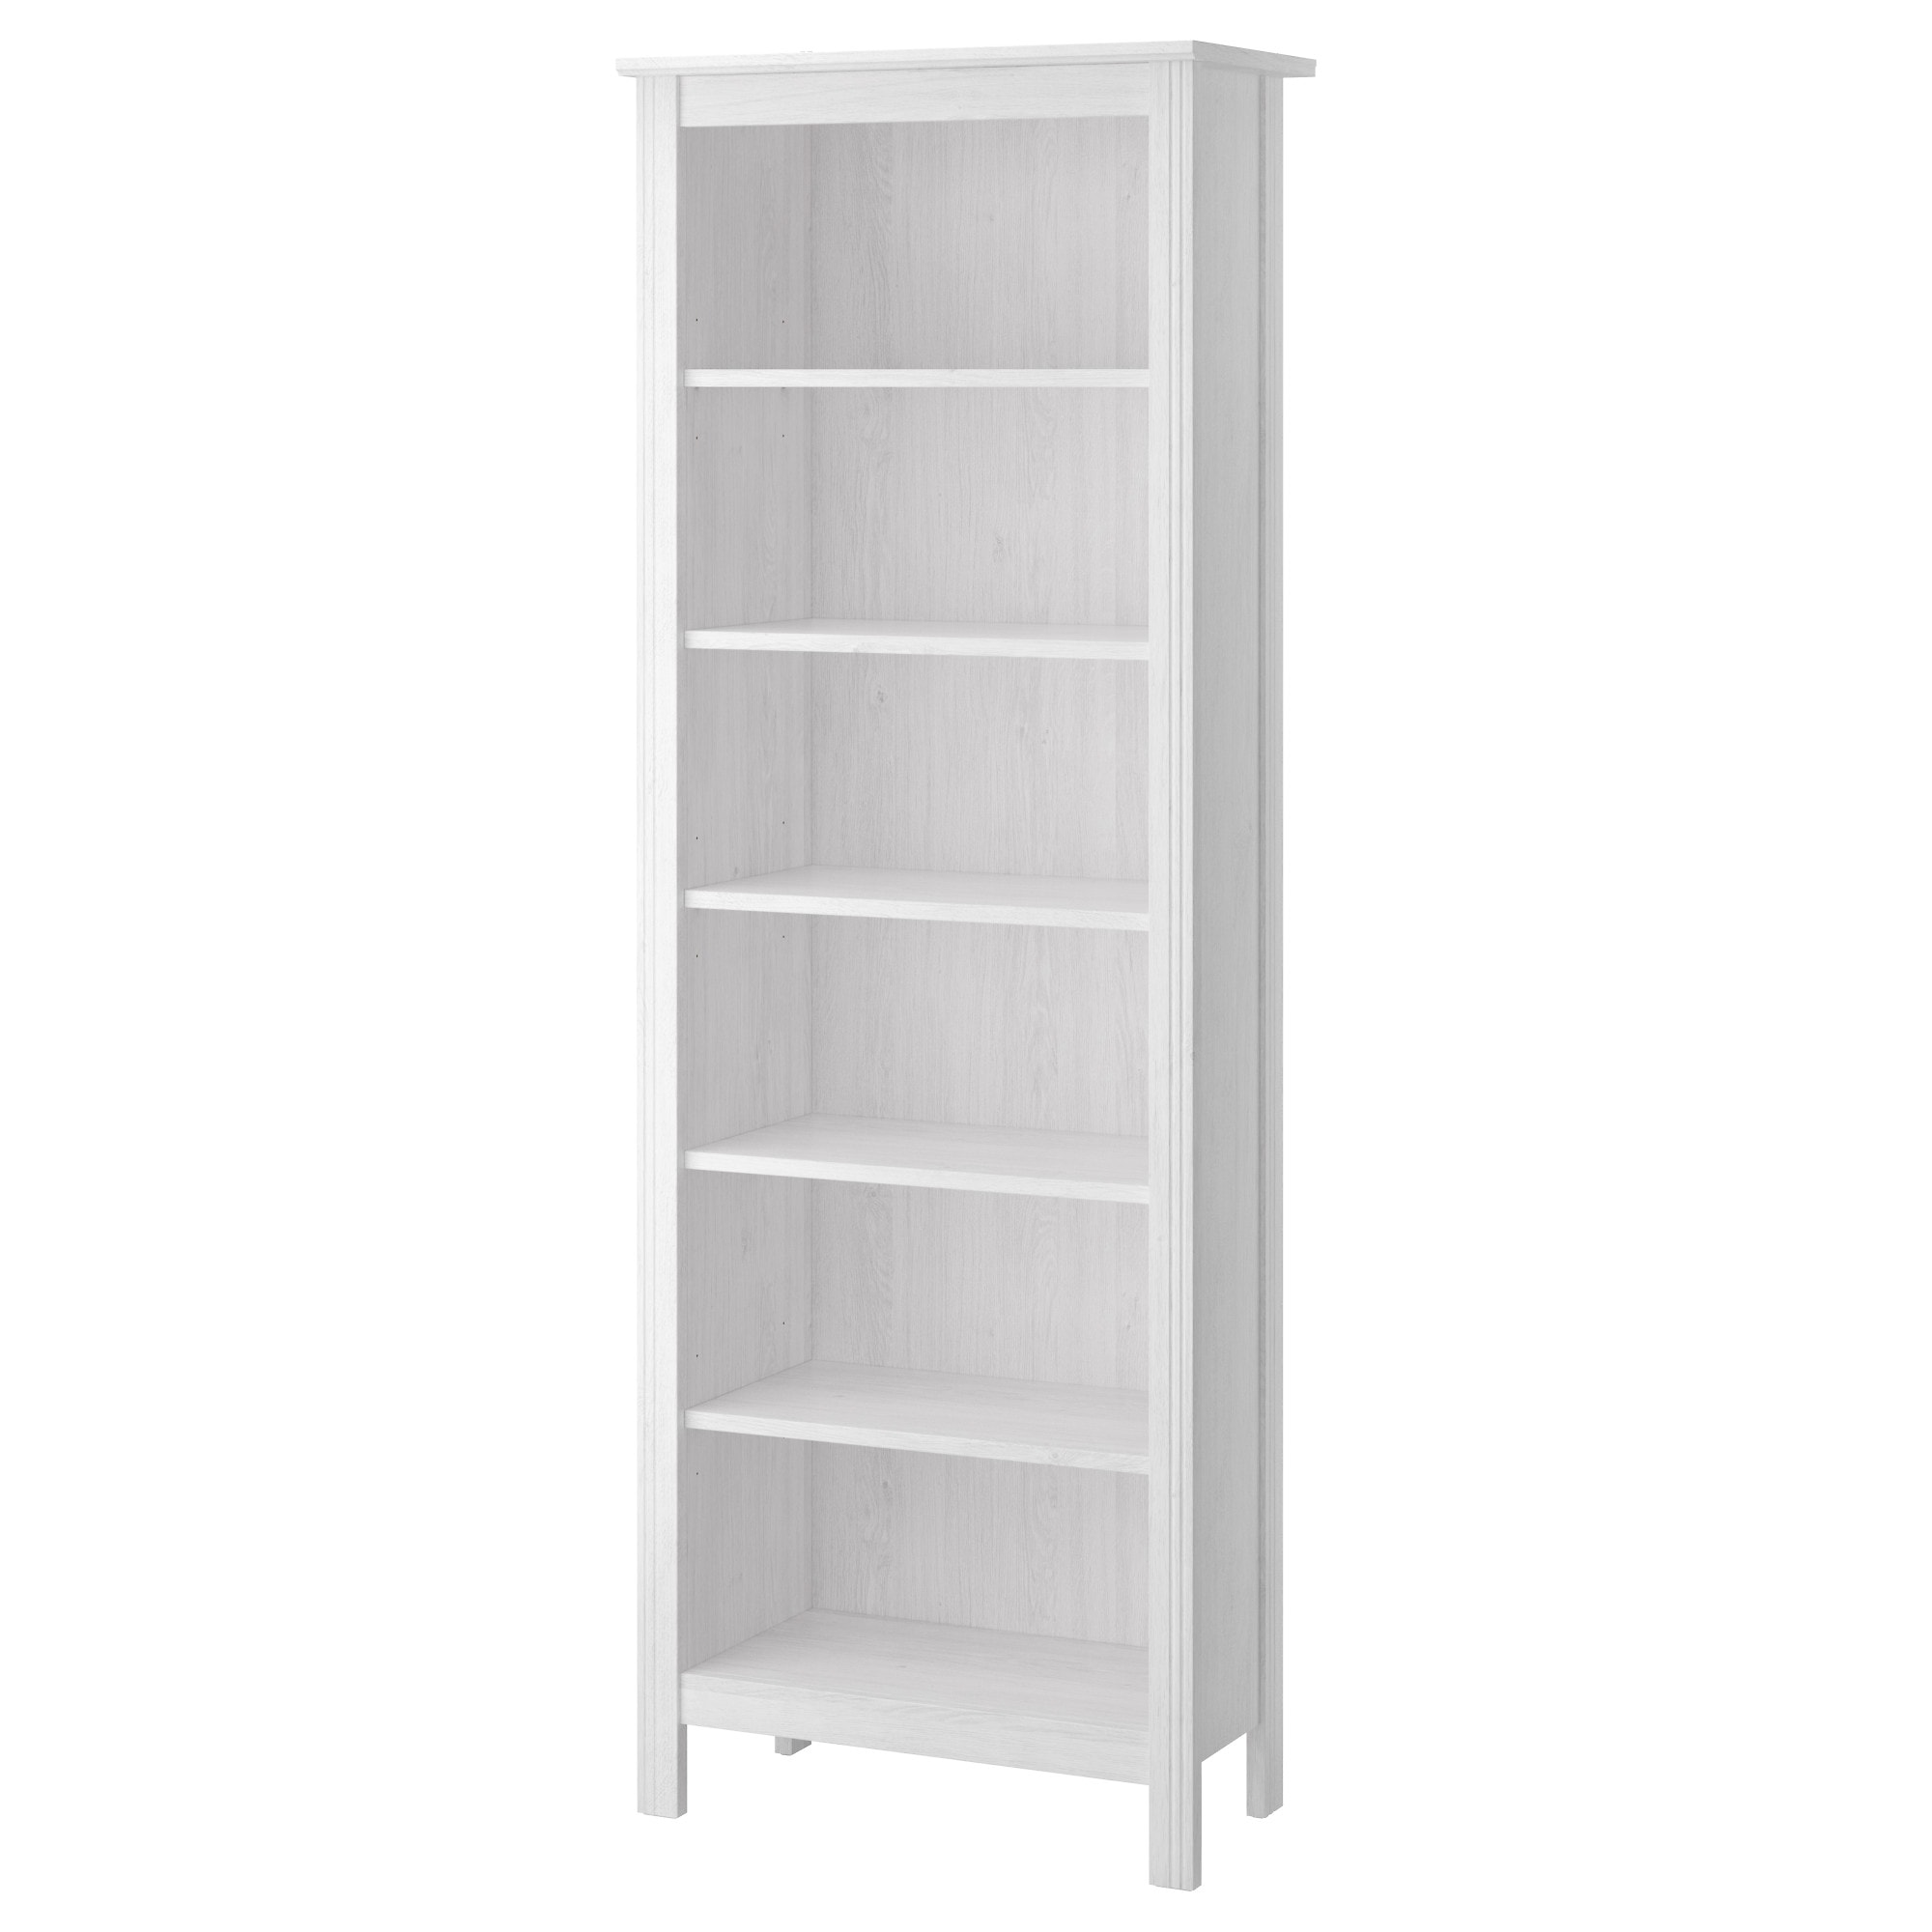 Bookcases Modern Traditional IKEA – White Bookcases for Sale